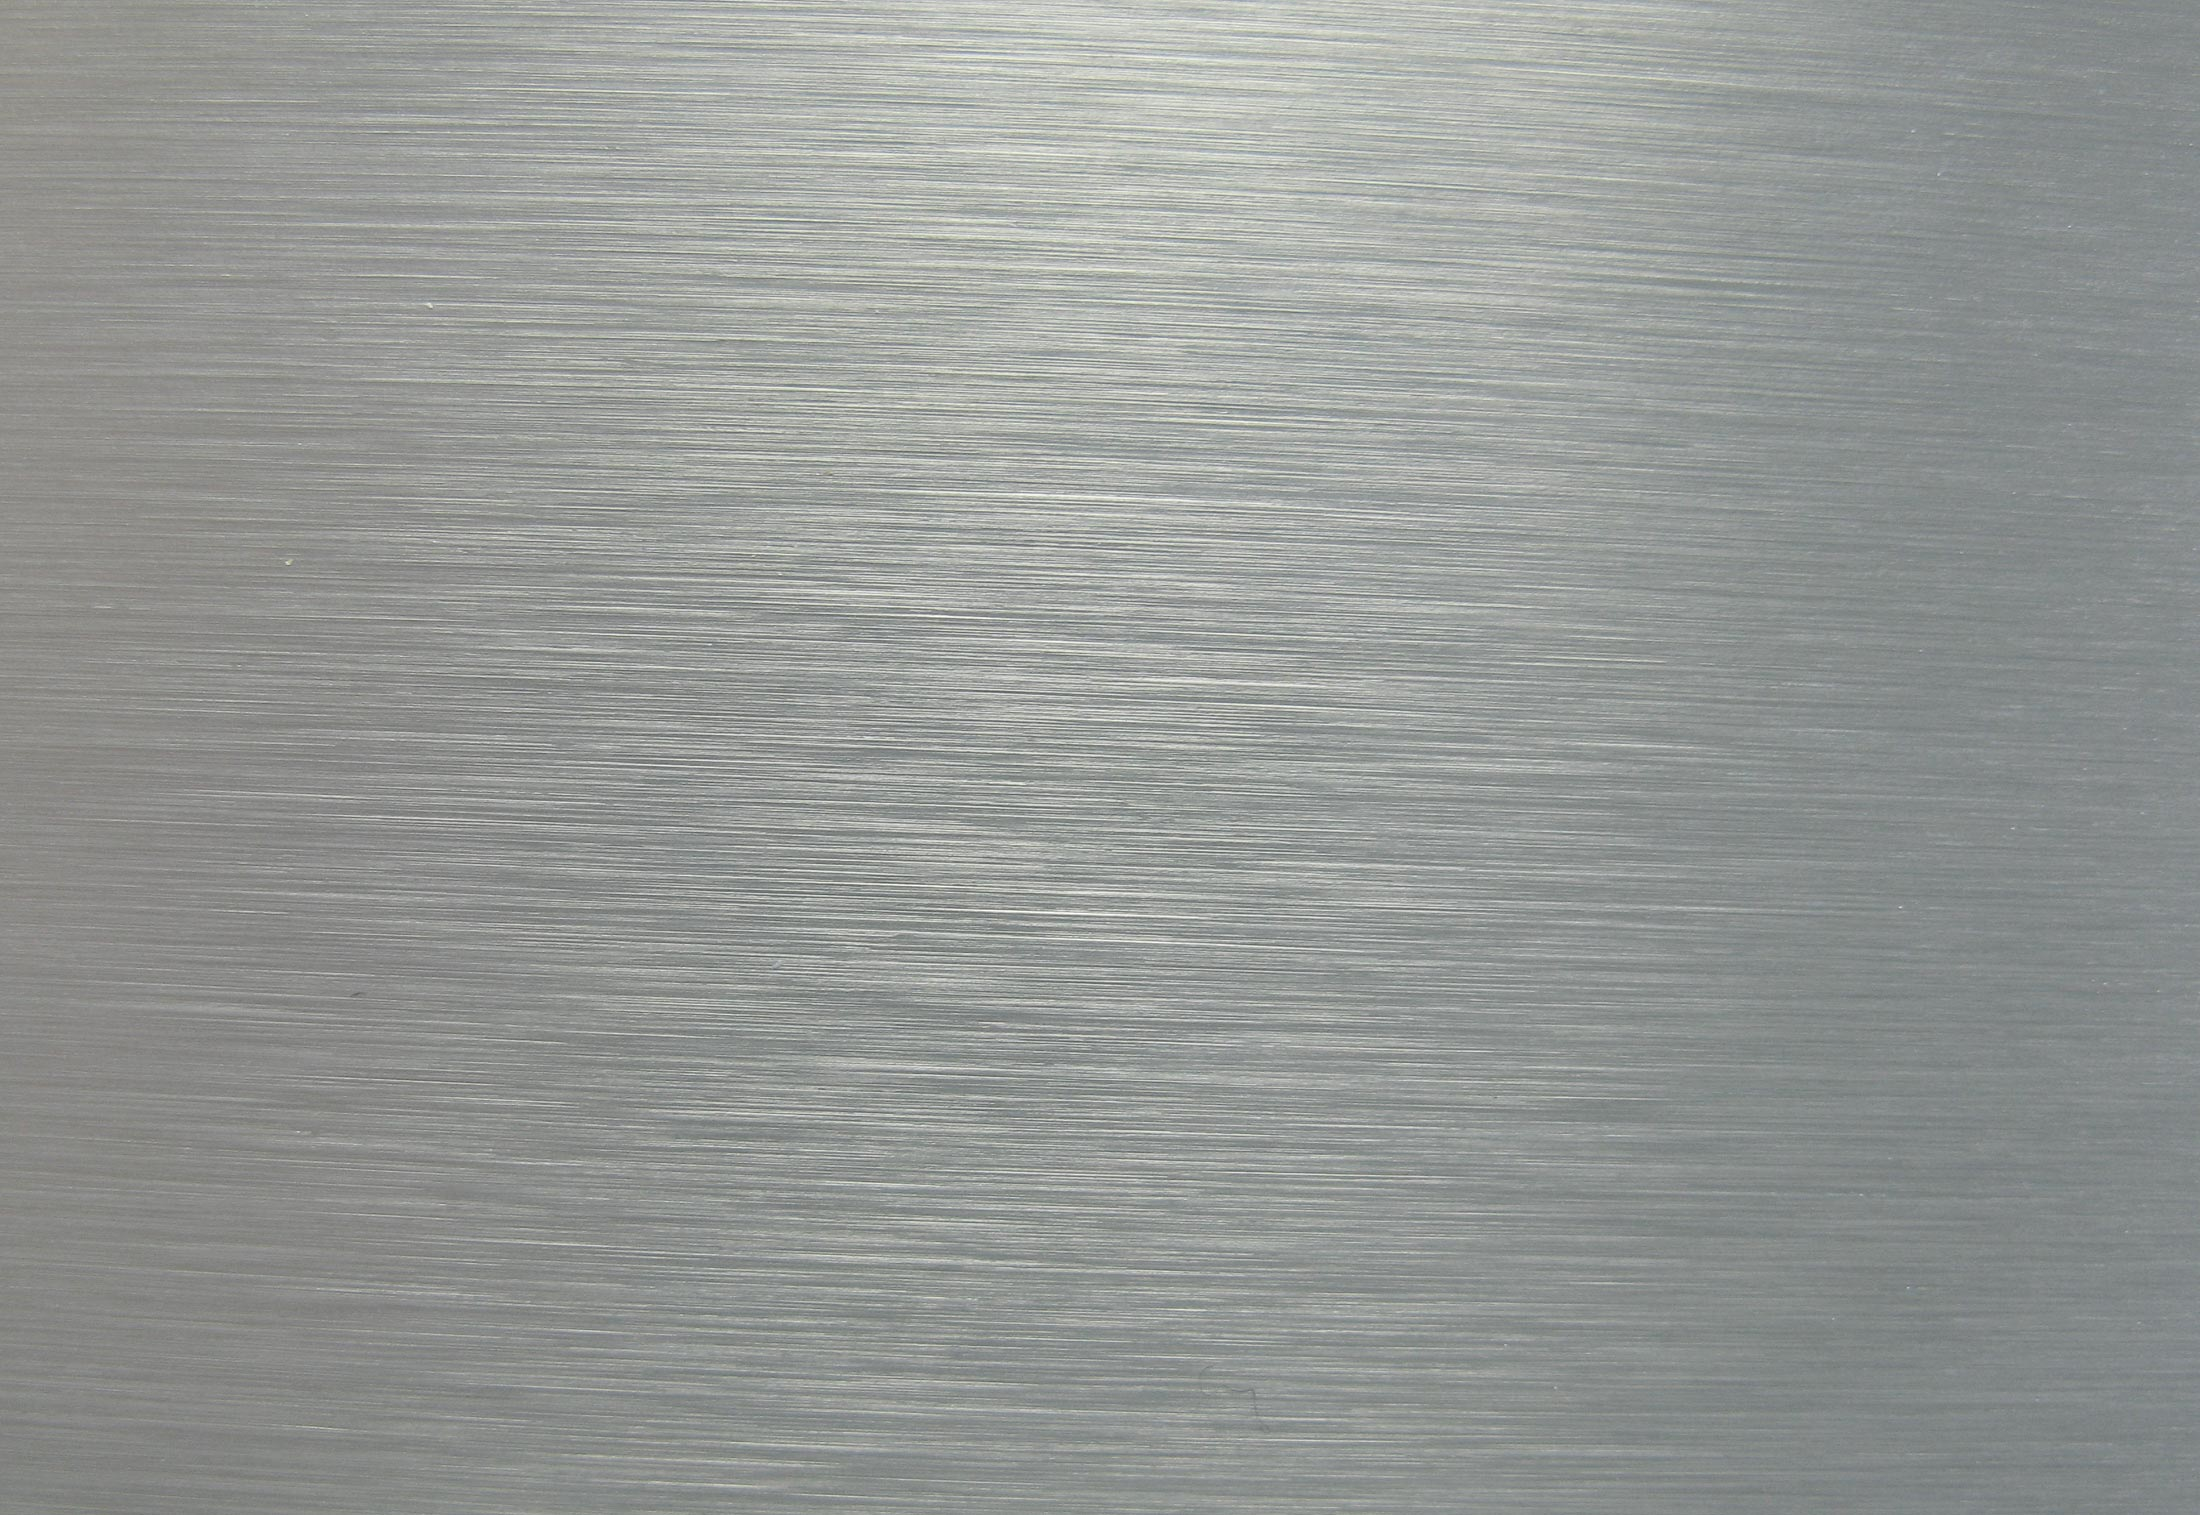 Dibond 174 Butlerfinish Stainless Steel By 3a Composites